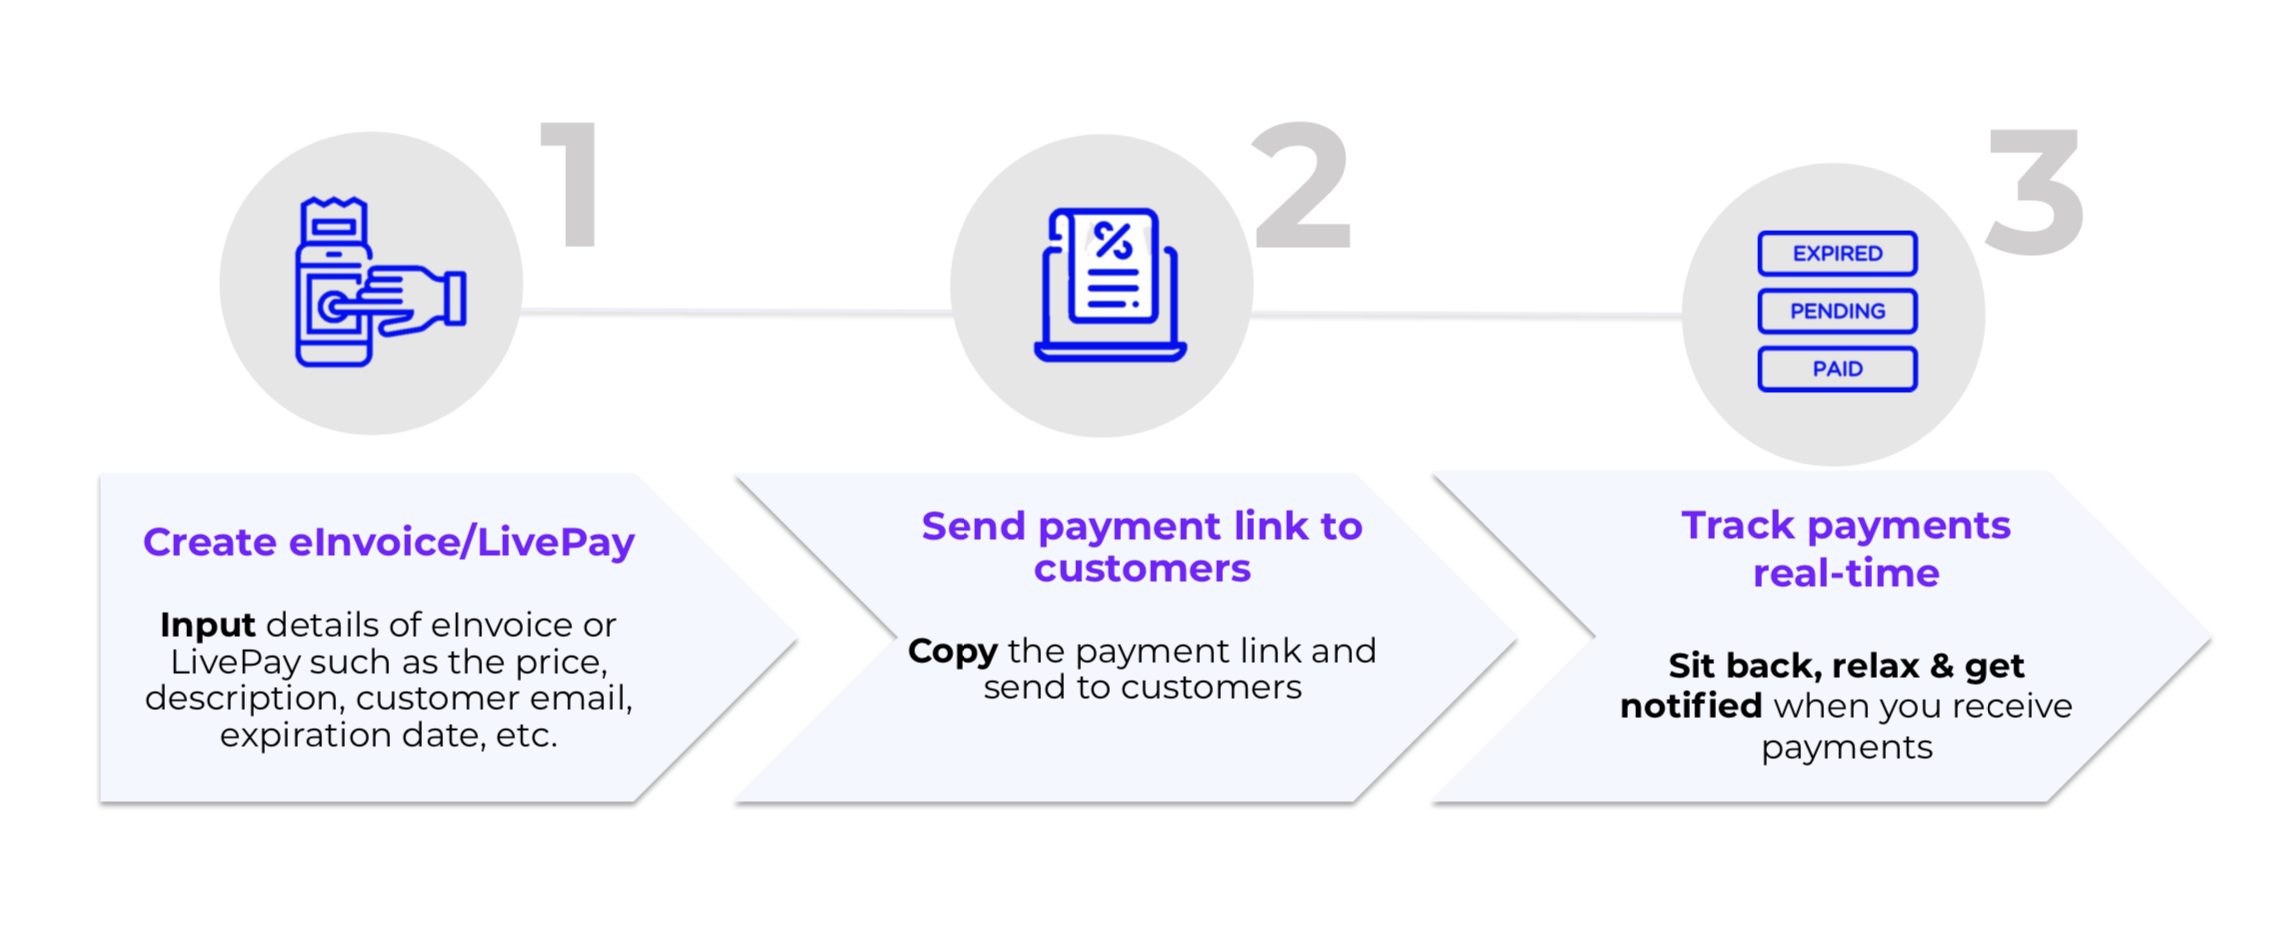 MCO - Revenue Monster Empowers Micro Businesses With One Click Payment